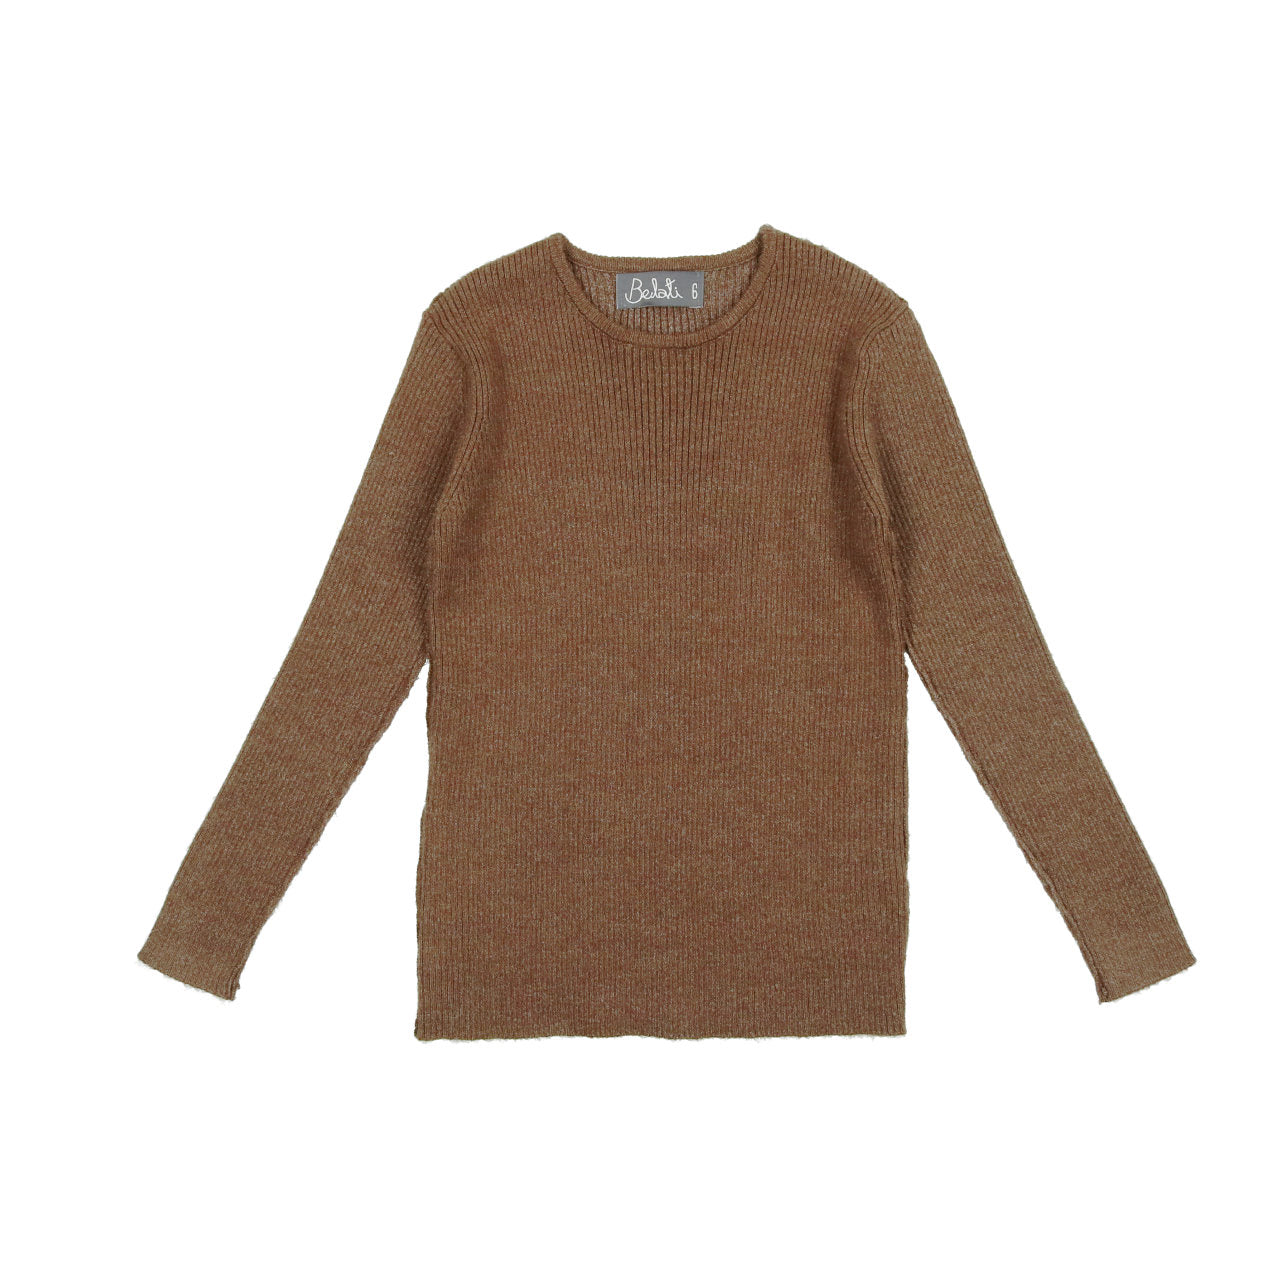 Belati Camel Basic Crew Neck Sweater